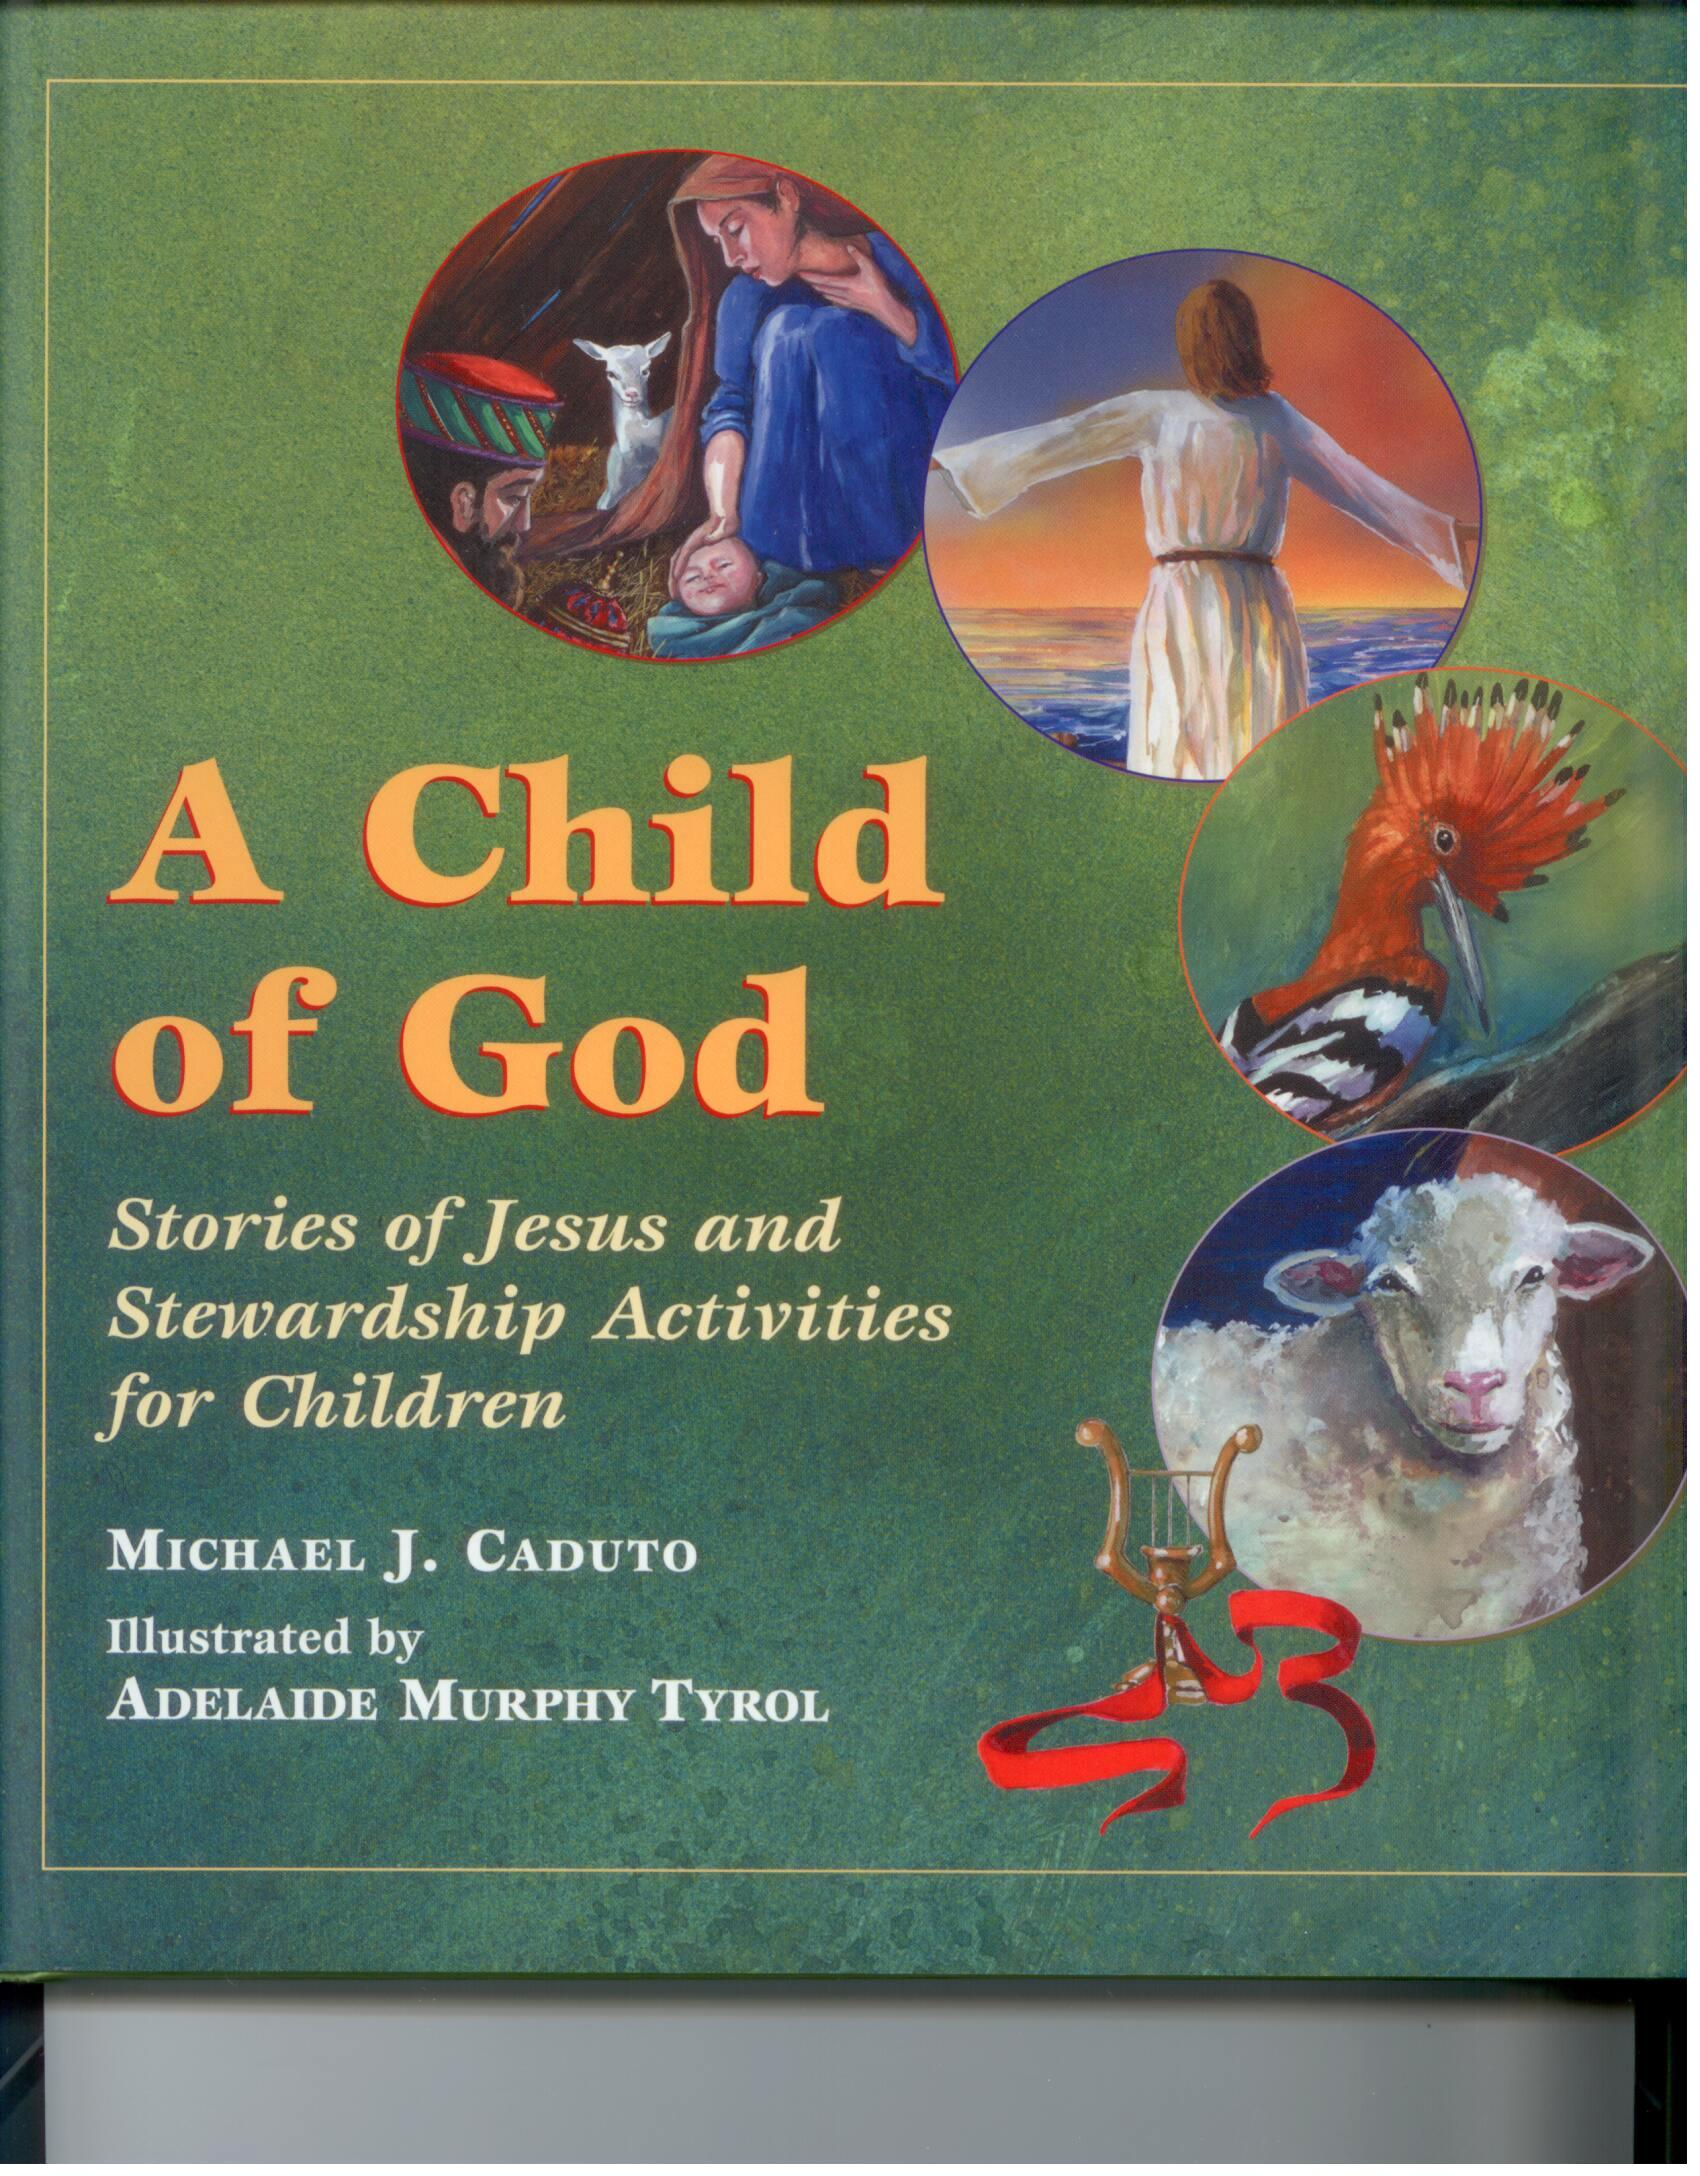 A Child Of God by Michael J. Cadutto 108-9780809167265